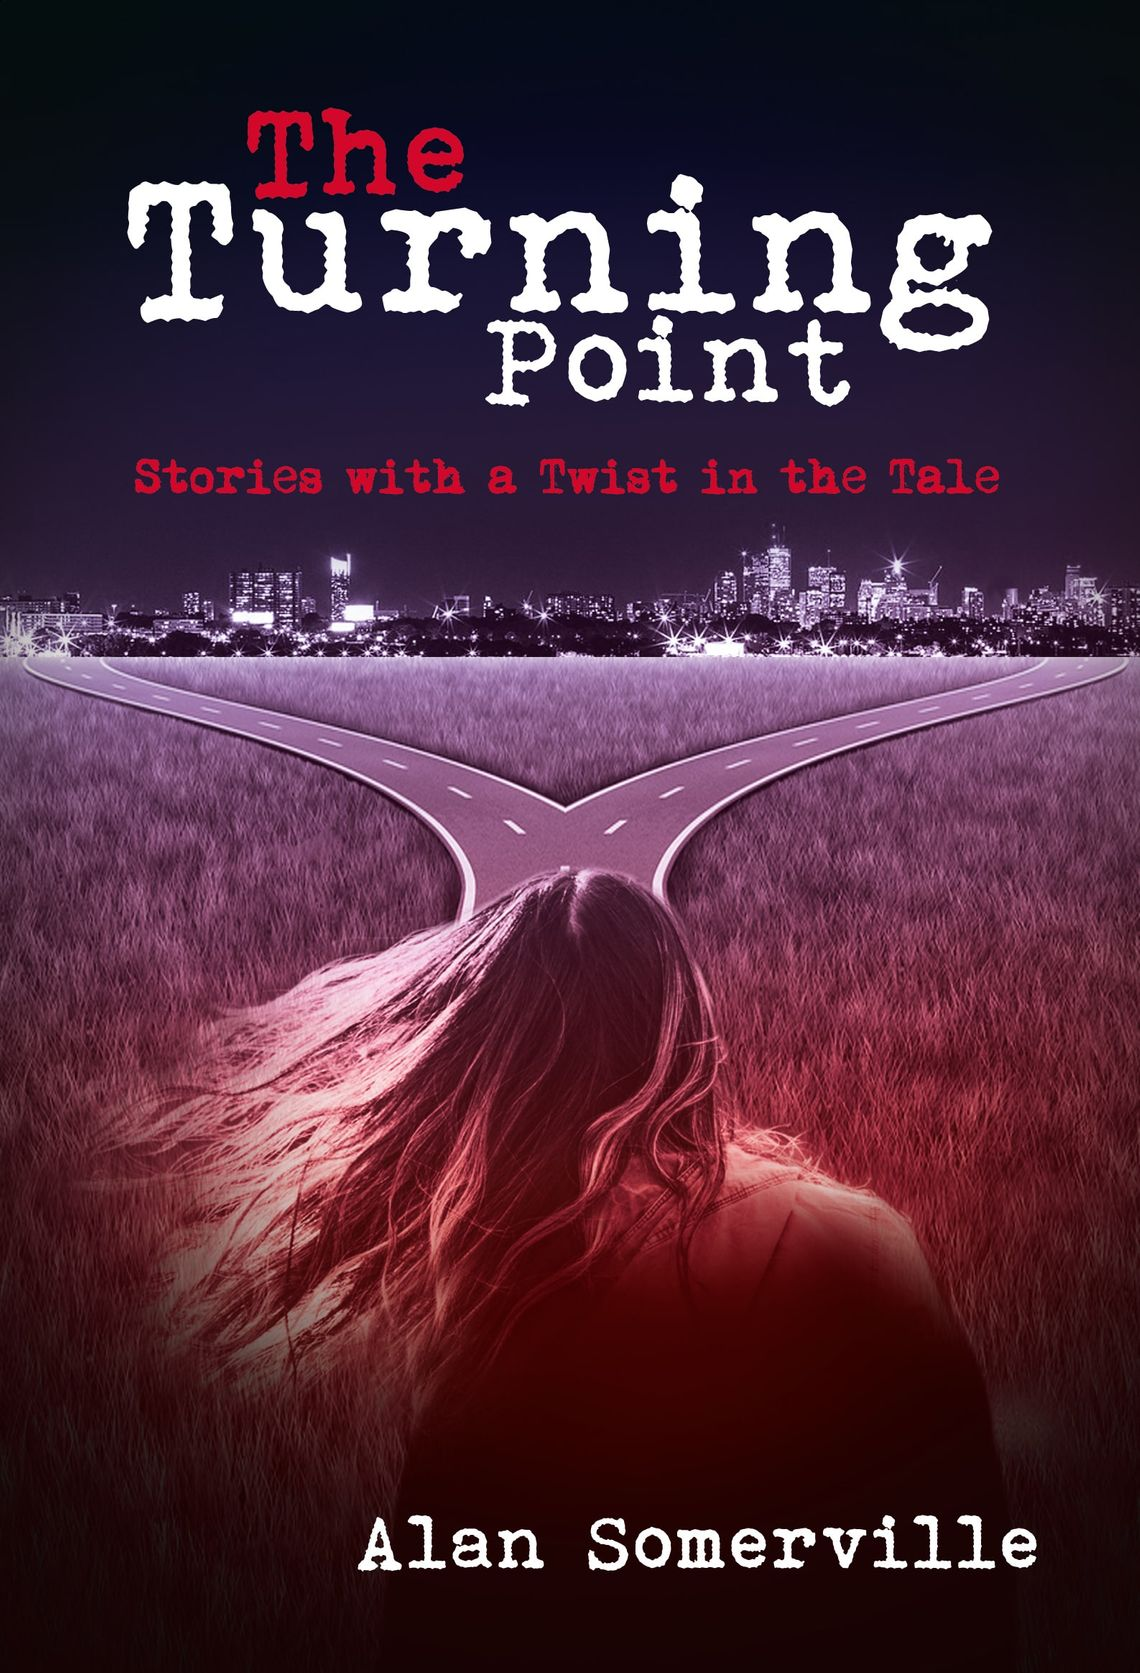 Behind the story of The Turning Point